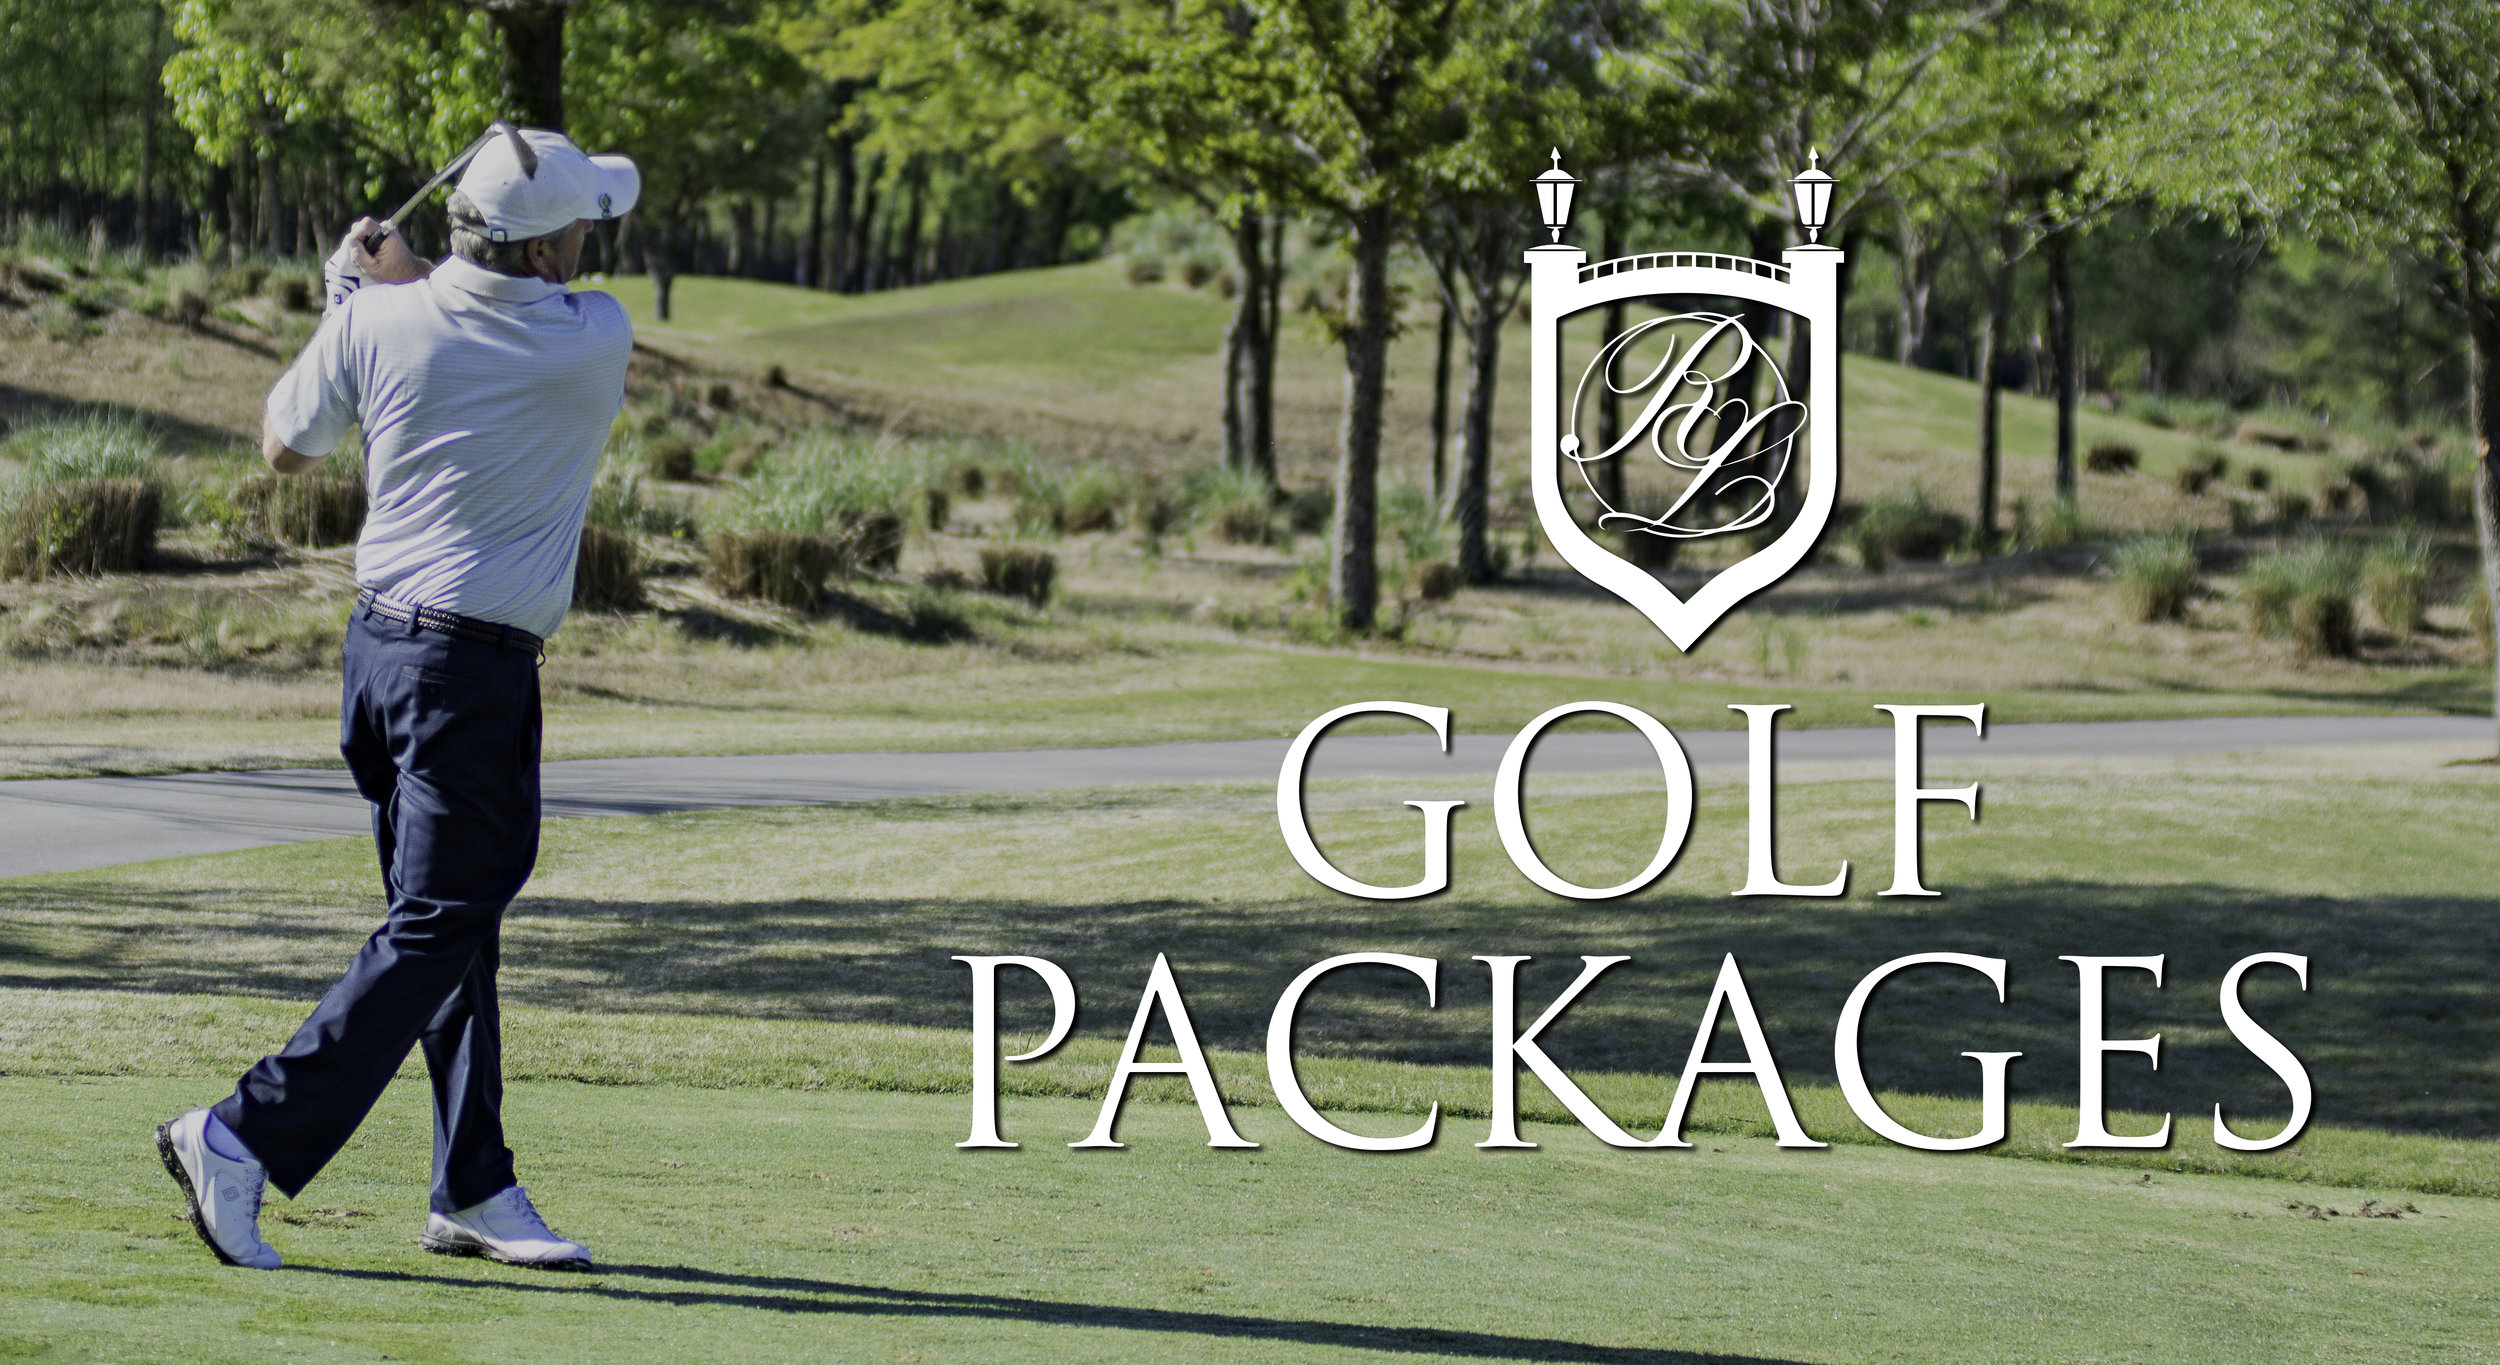 river-landing-golf-packages-north-carolina.jpg